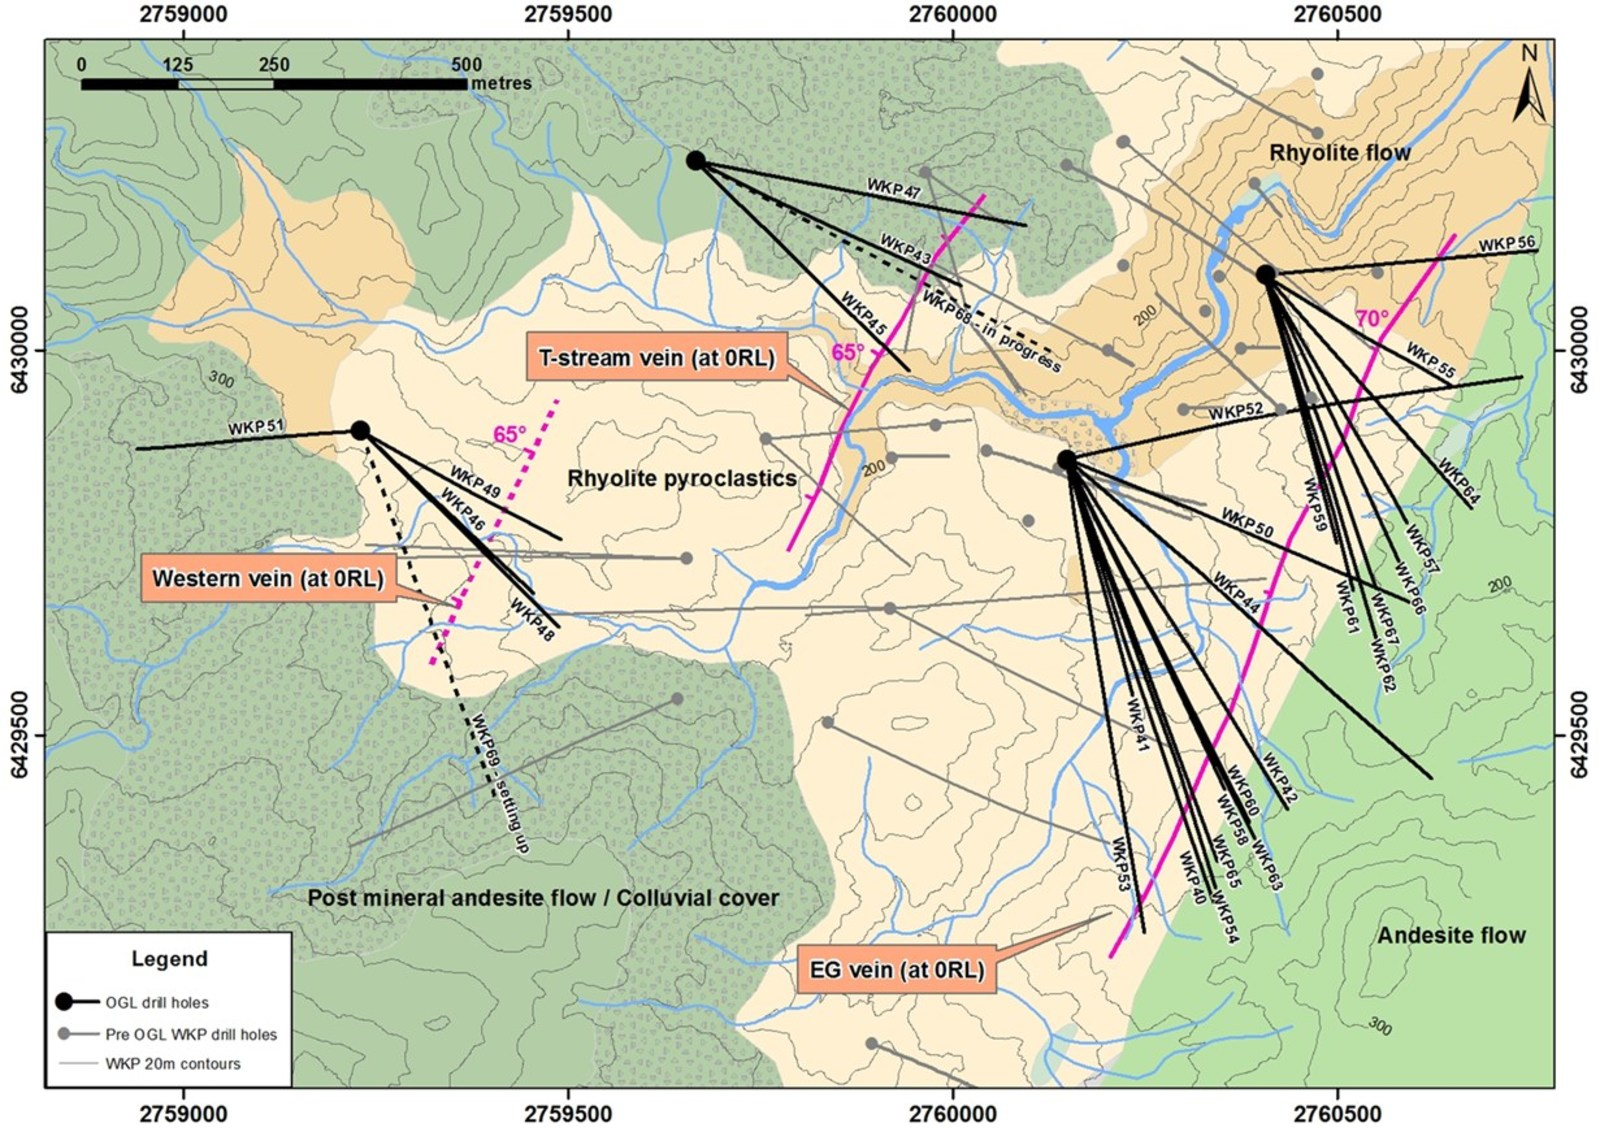 Figure 1: Plan View of geology and distribution of known veins at WKP